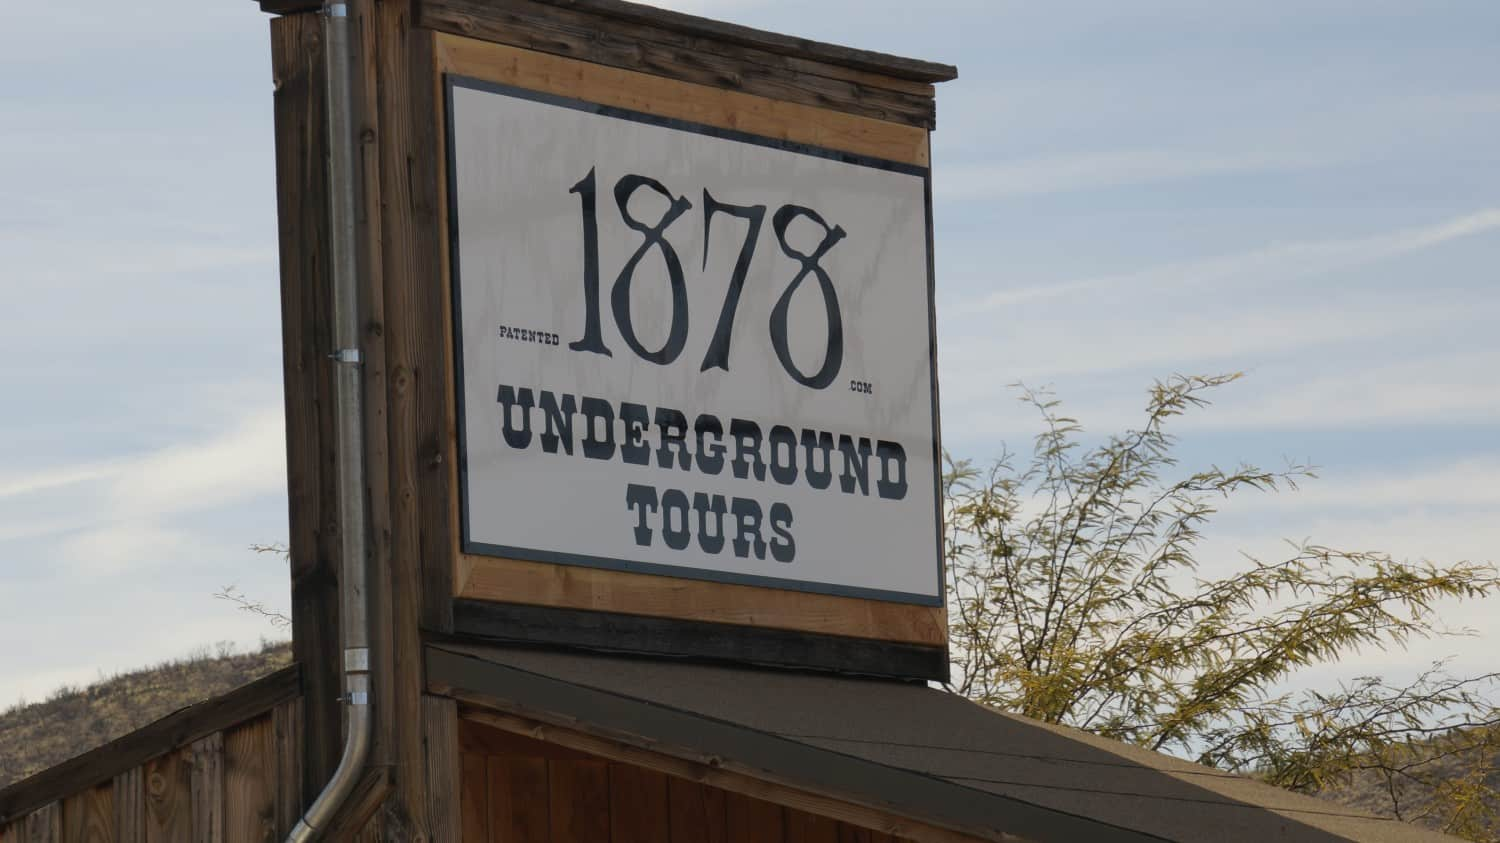 Tombstone Consolidated Mines Company - A Pet Friendly Attraction in Tombstone, AZ